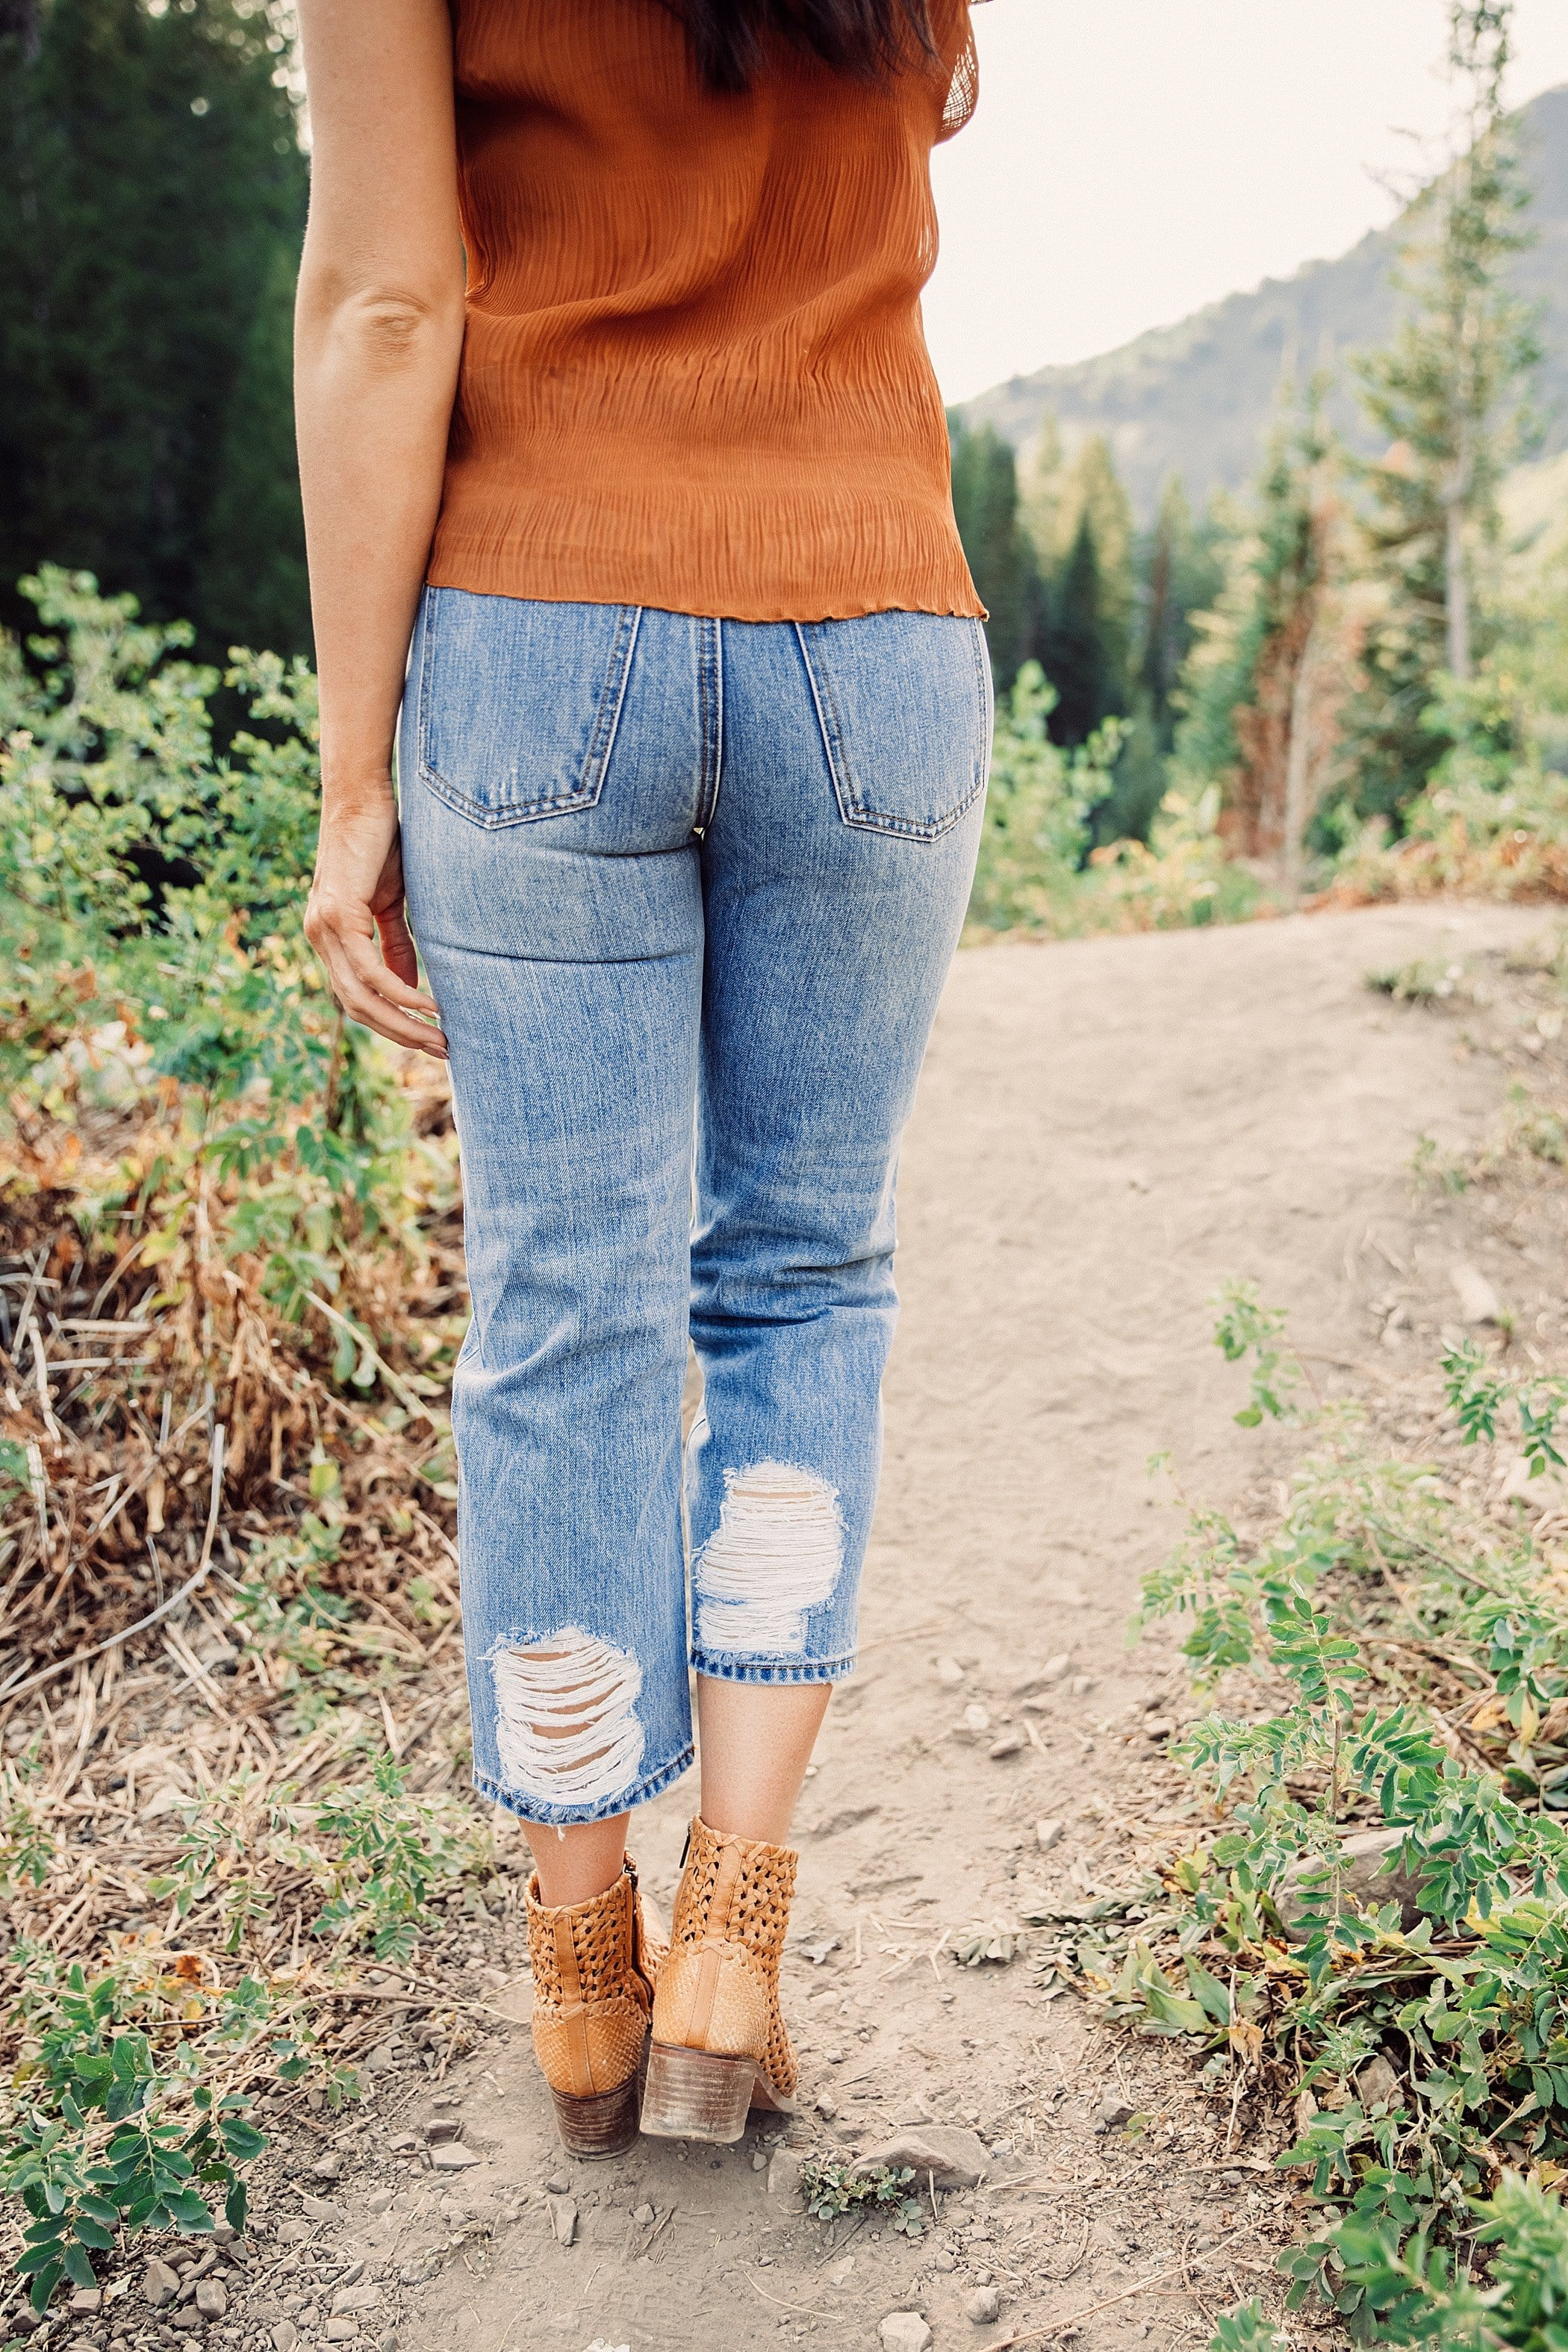 The Delta Cropped Length Jeans in Medium Denim